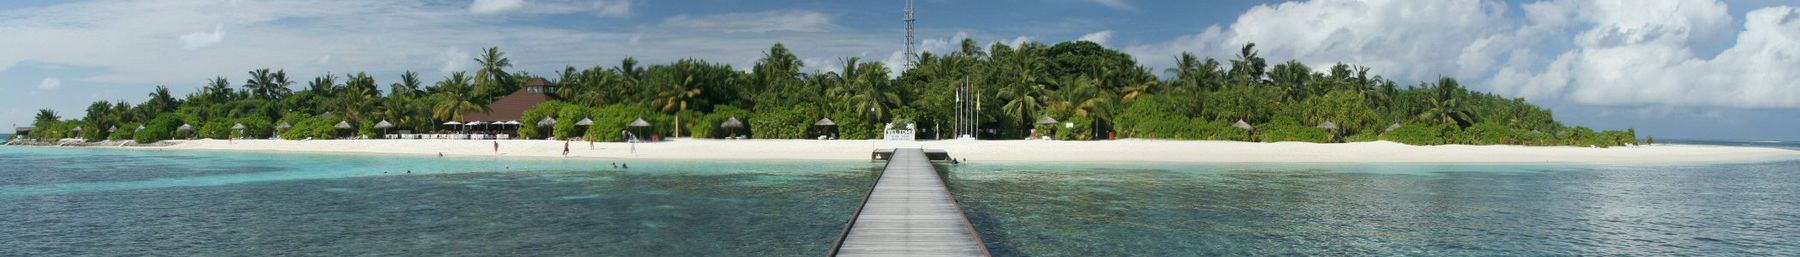 Maldives banner Small island shoreline with beach.jpg